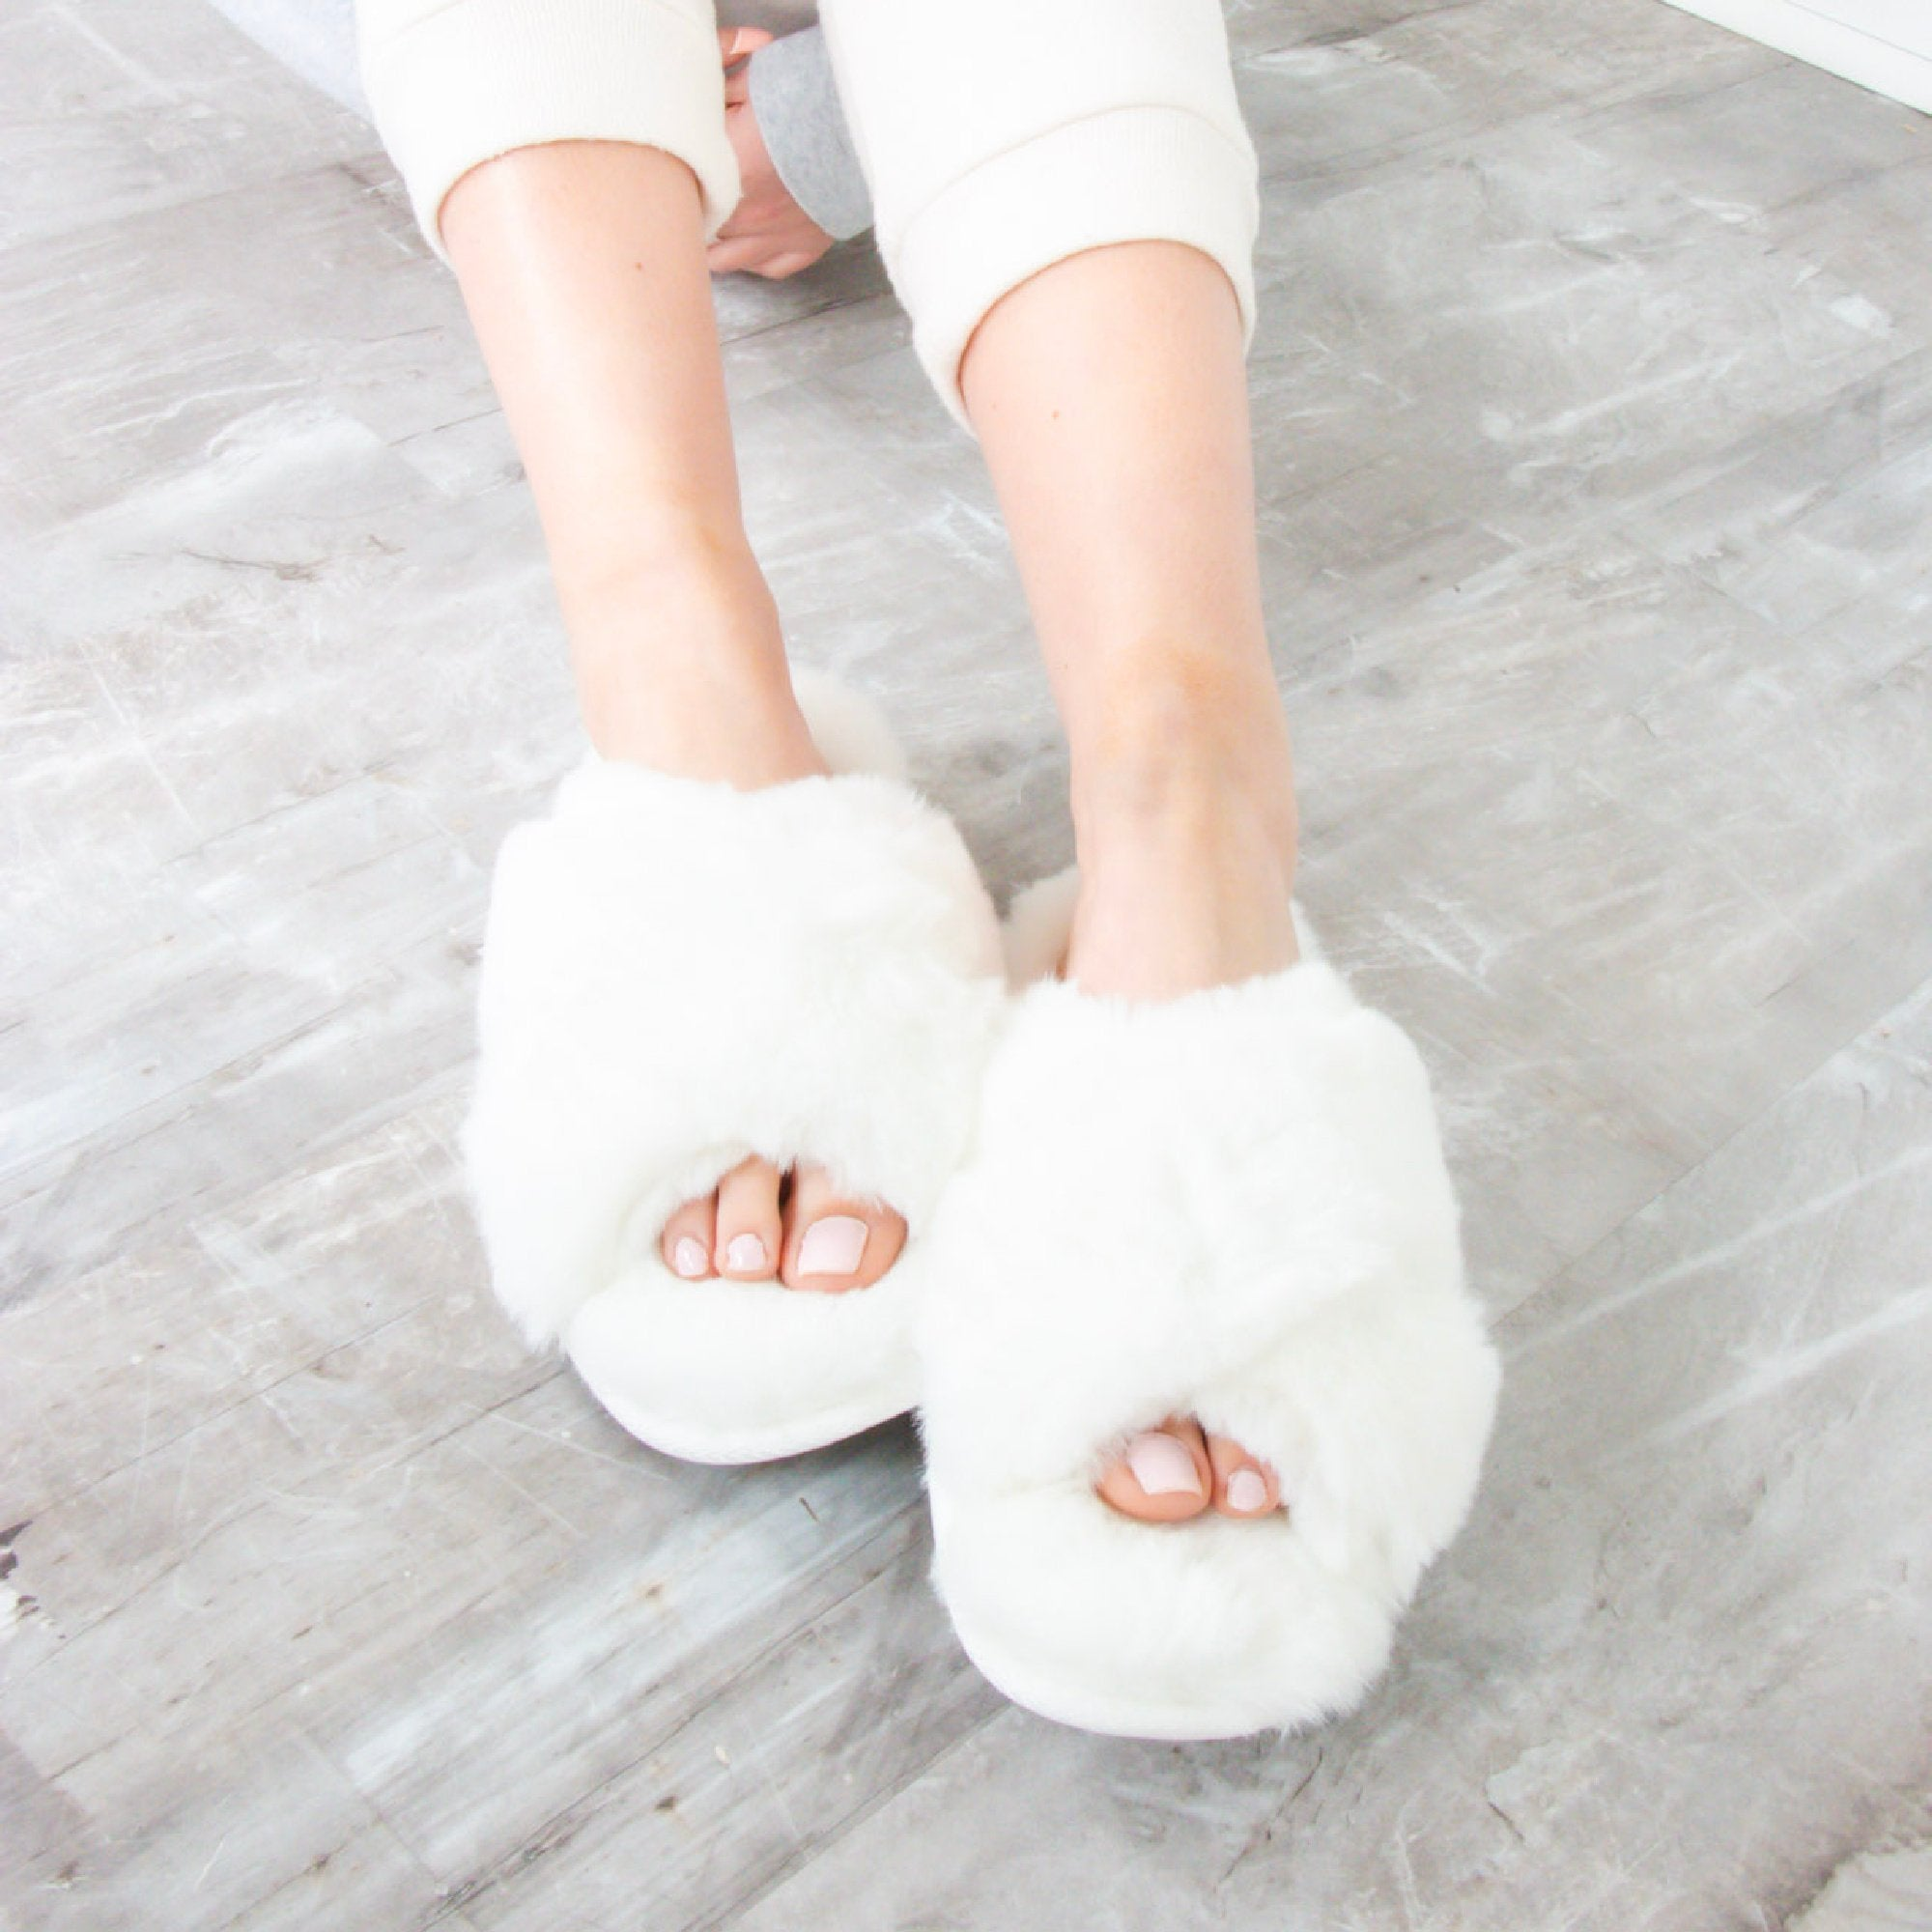 SLIPPERS WHITE - TYPE 1 DIABETES SIZE 7-8